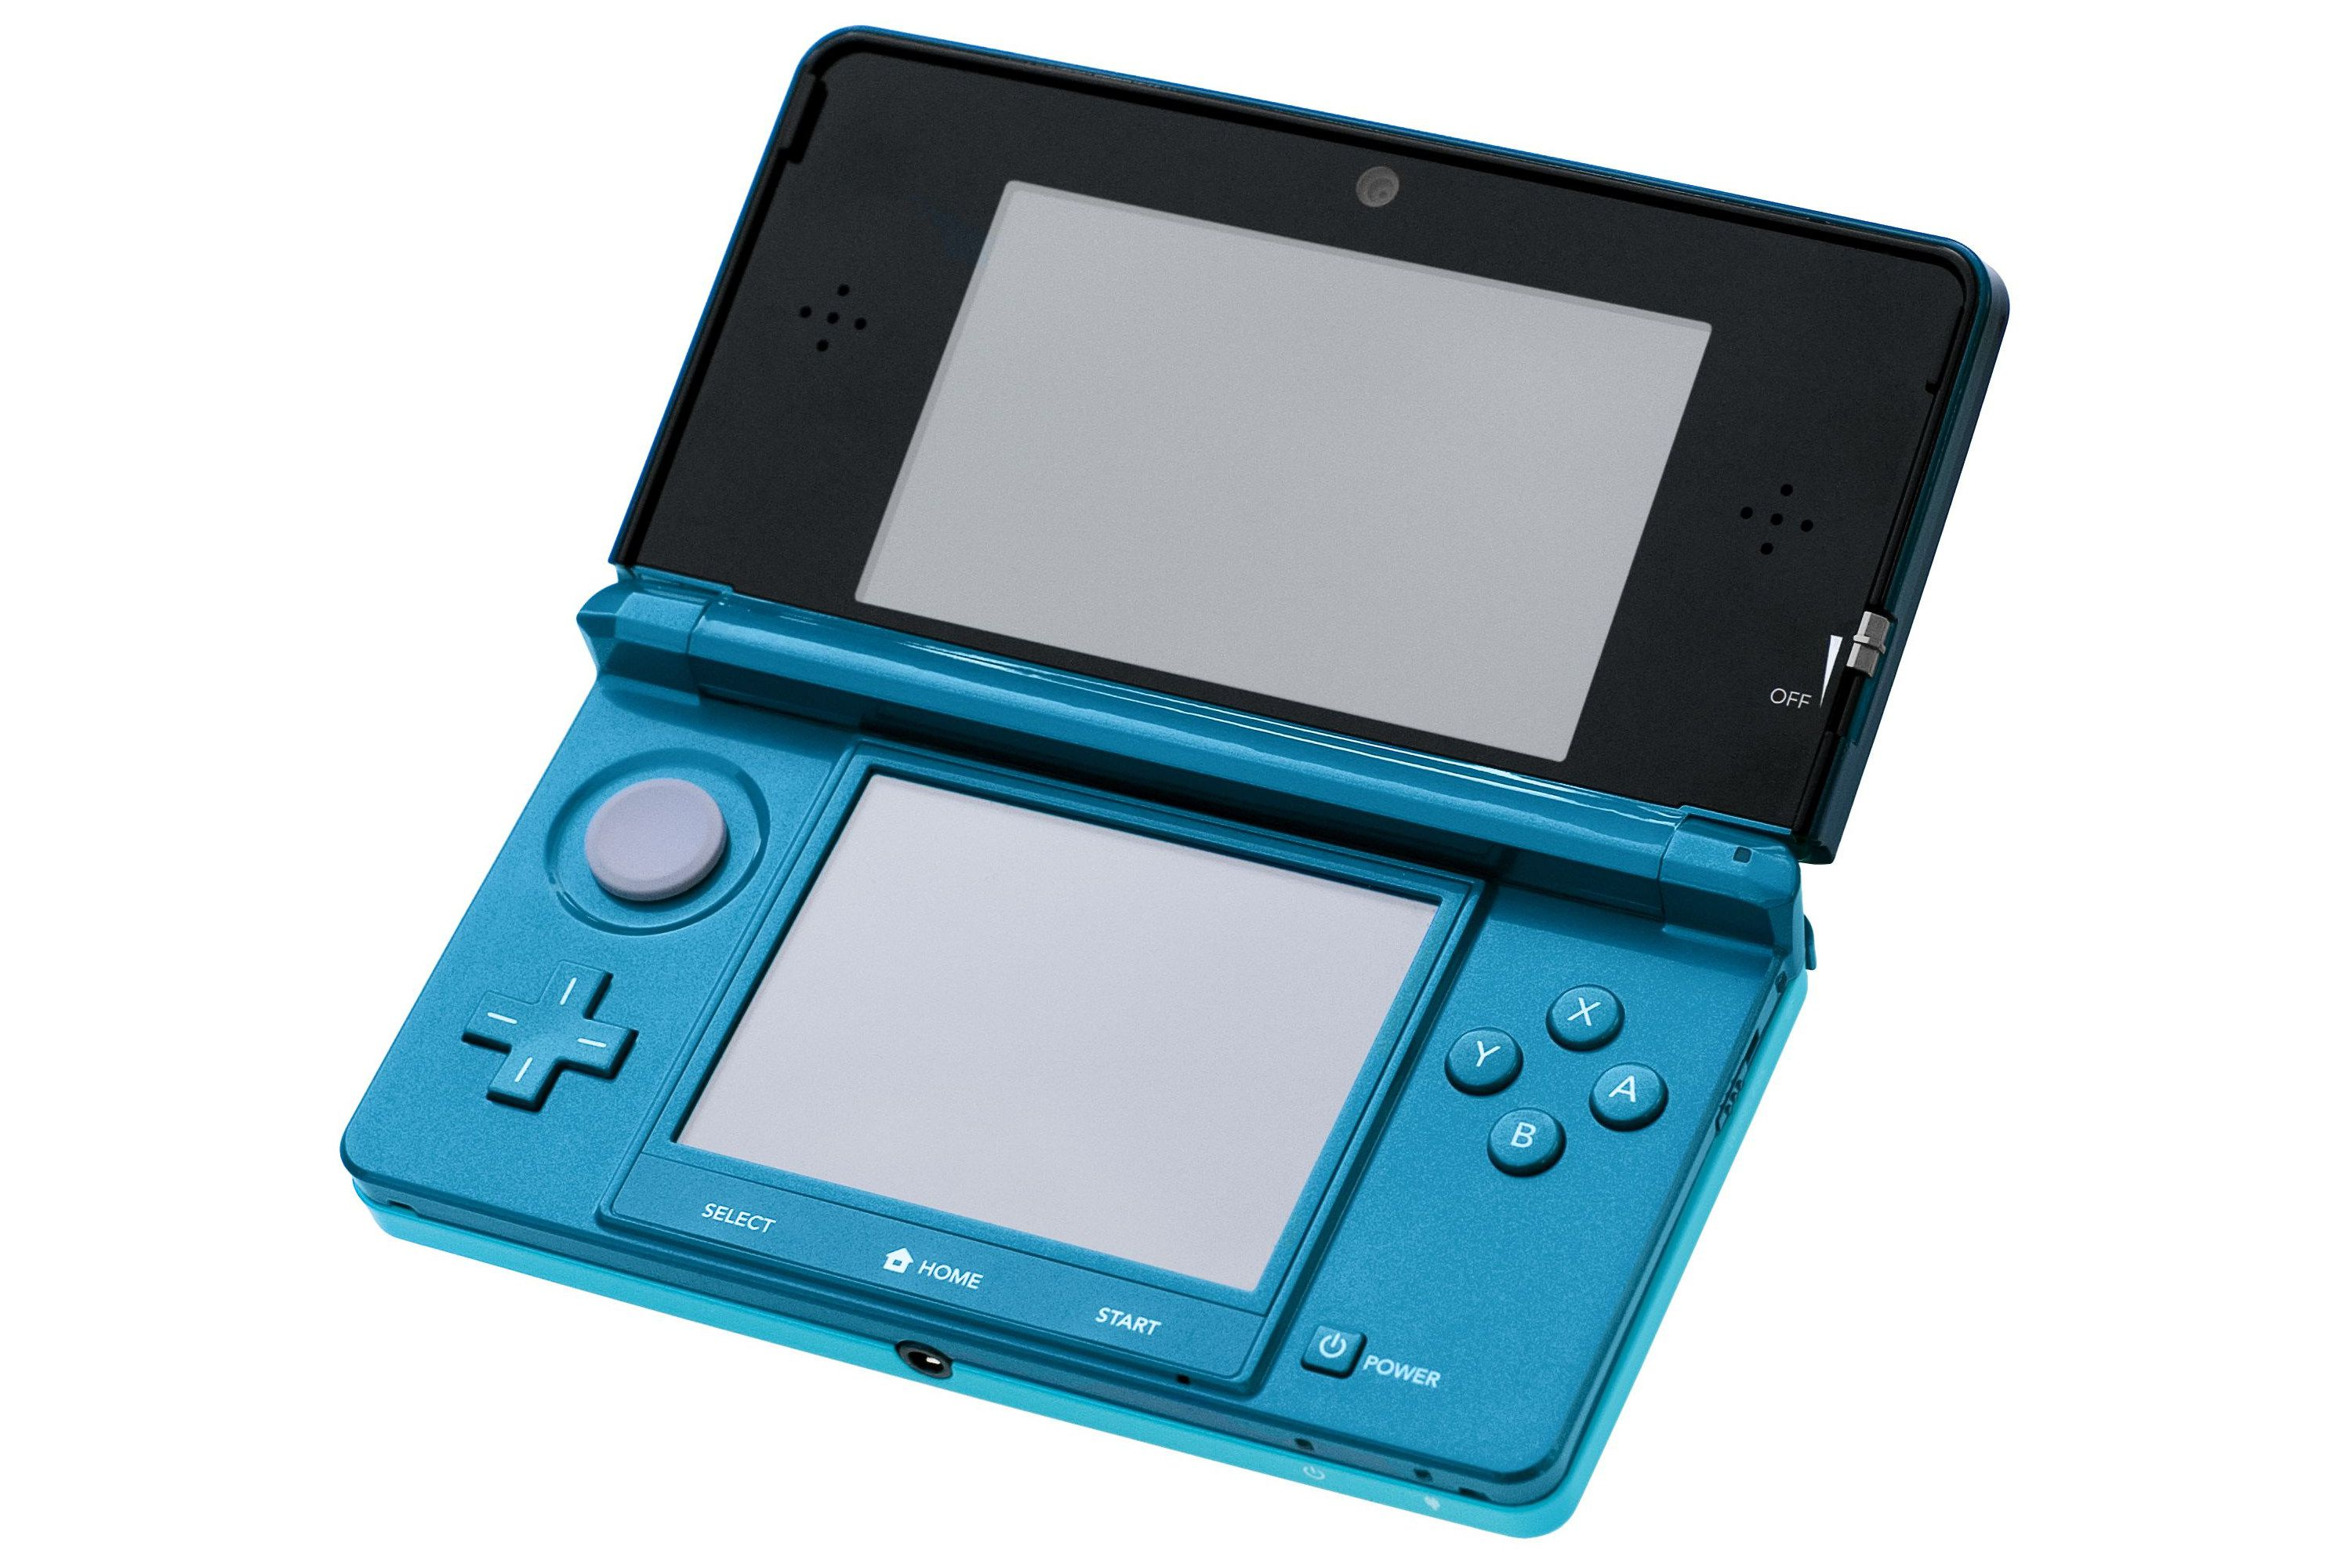 Best Homebrew Nintendo DS Games